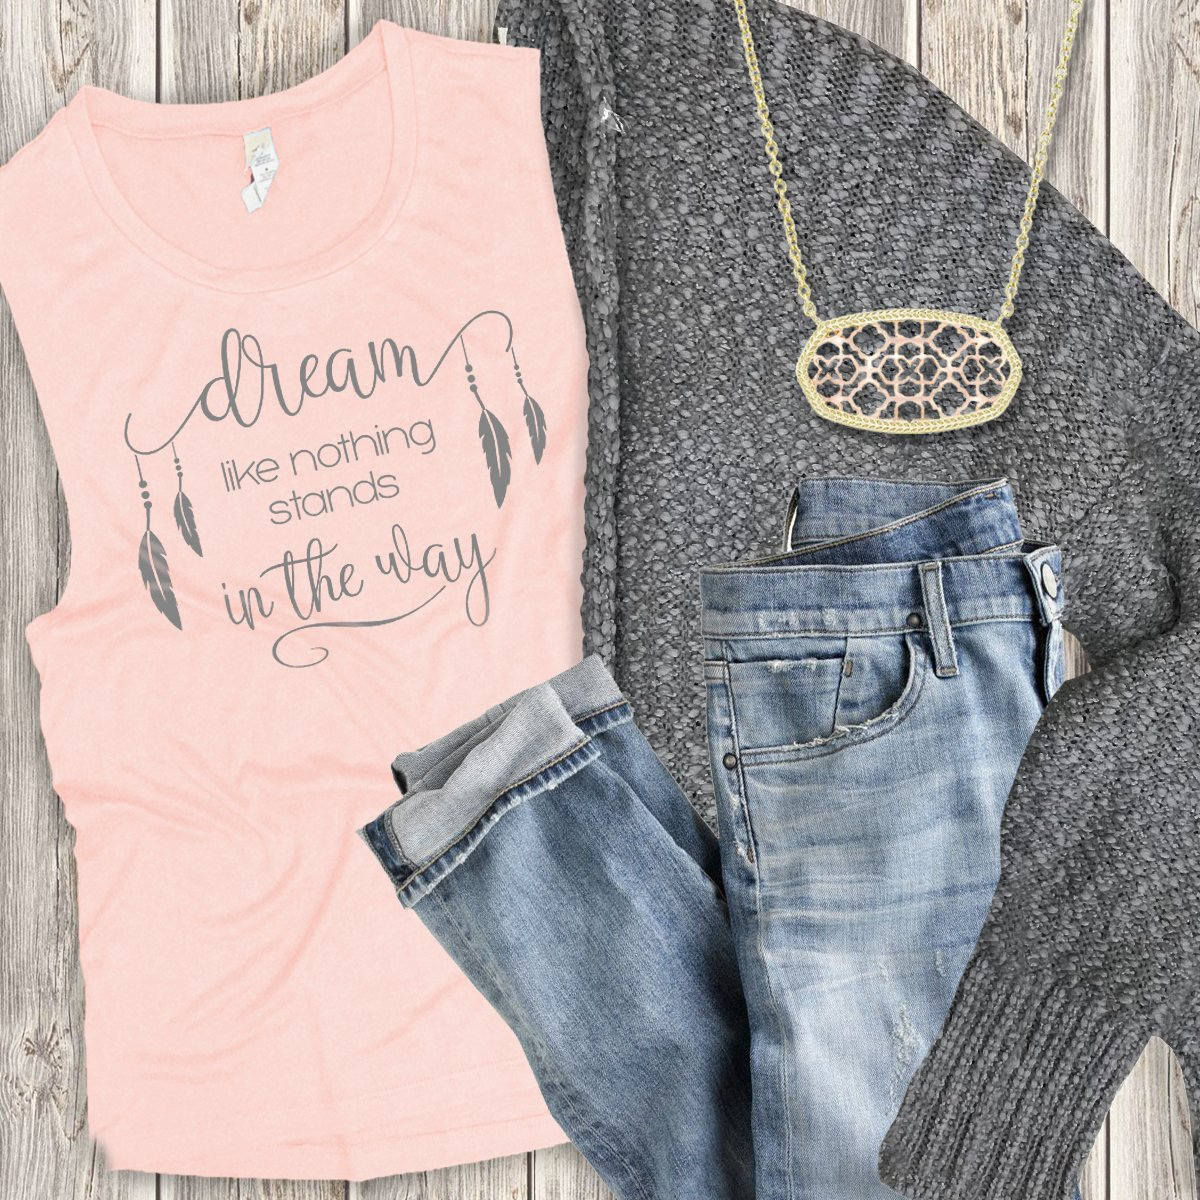 Transitional pieces are a must have for fall in the south! How cute is this muscle tee paired with a cozy cardigan?! We love it!  #borntobesassy #shopbtbs #fallfashion #fallstyle #casualstyle #comfyclothes #outfitideas #trending #girlyoutfits pic.twitter.com/4cuISzMNLM